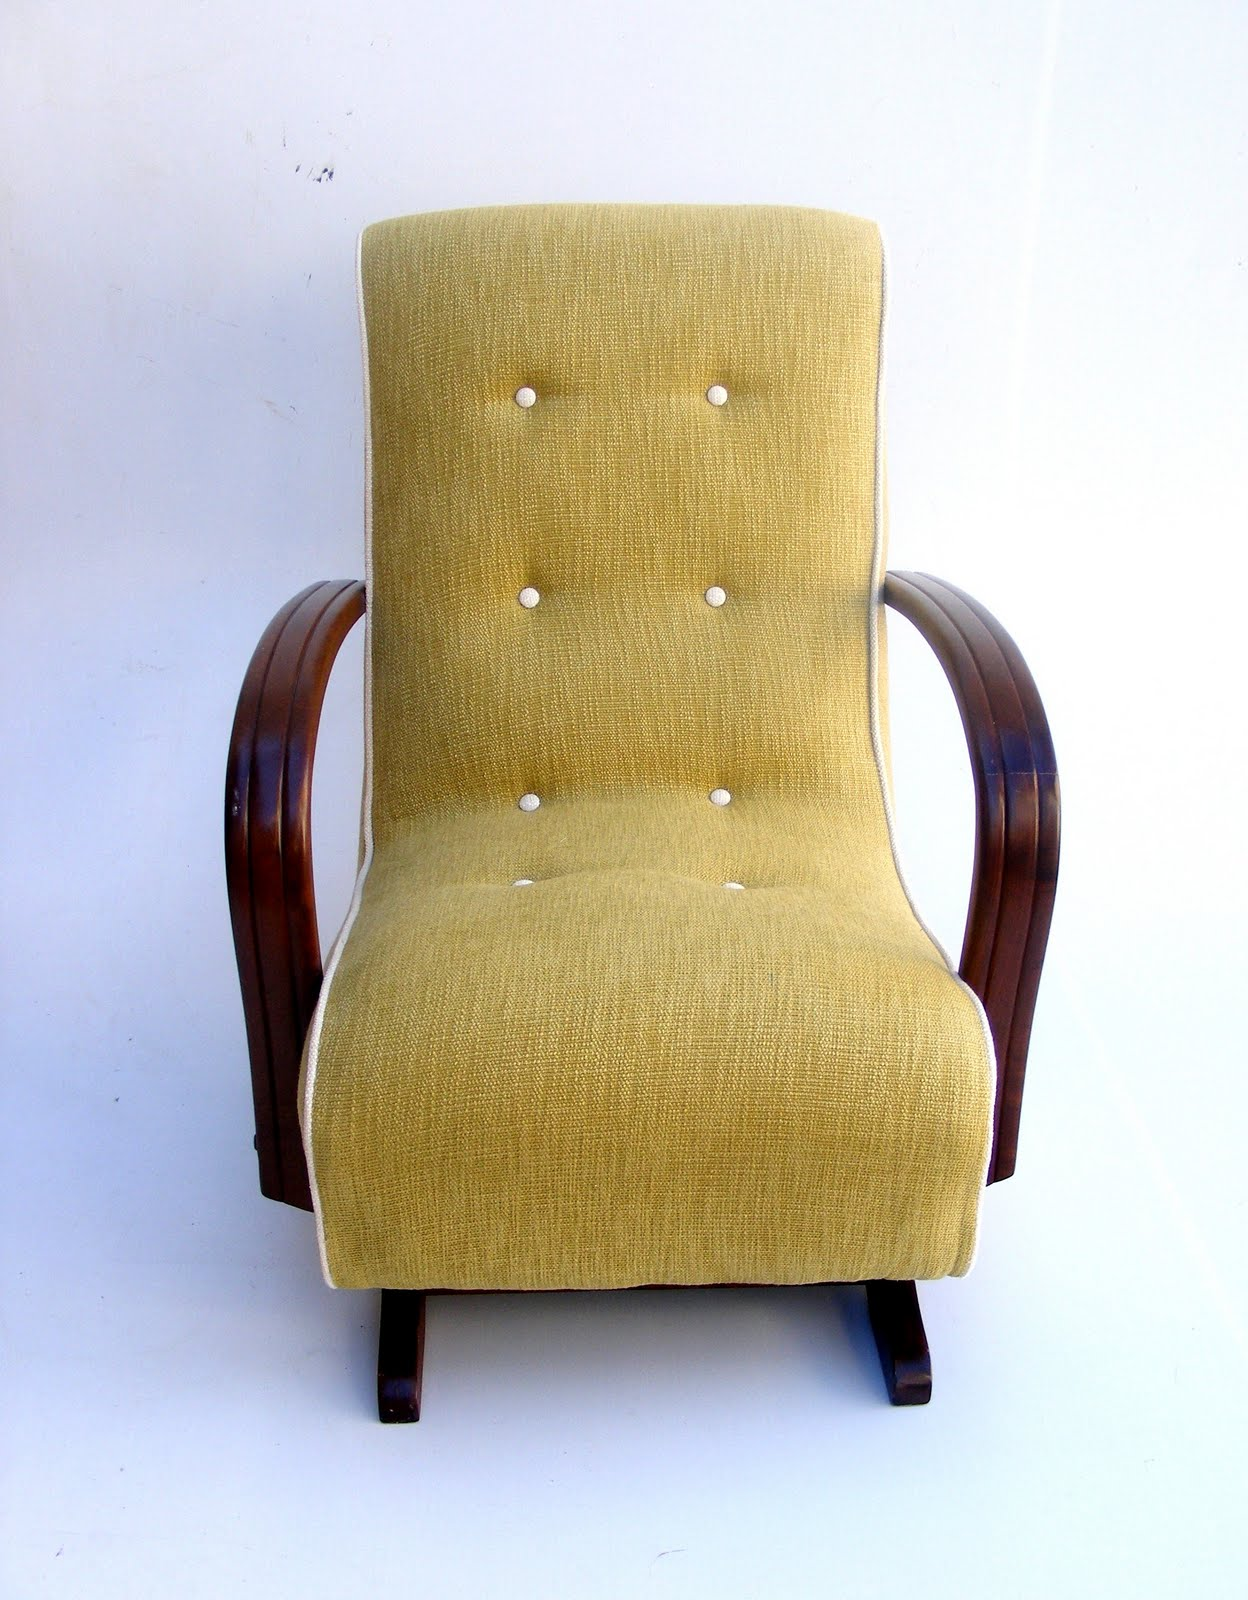 banana fiber rocking chair covers at wedding reception 302 found